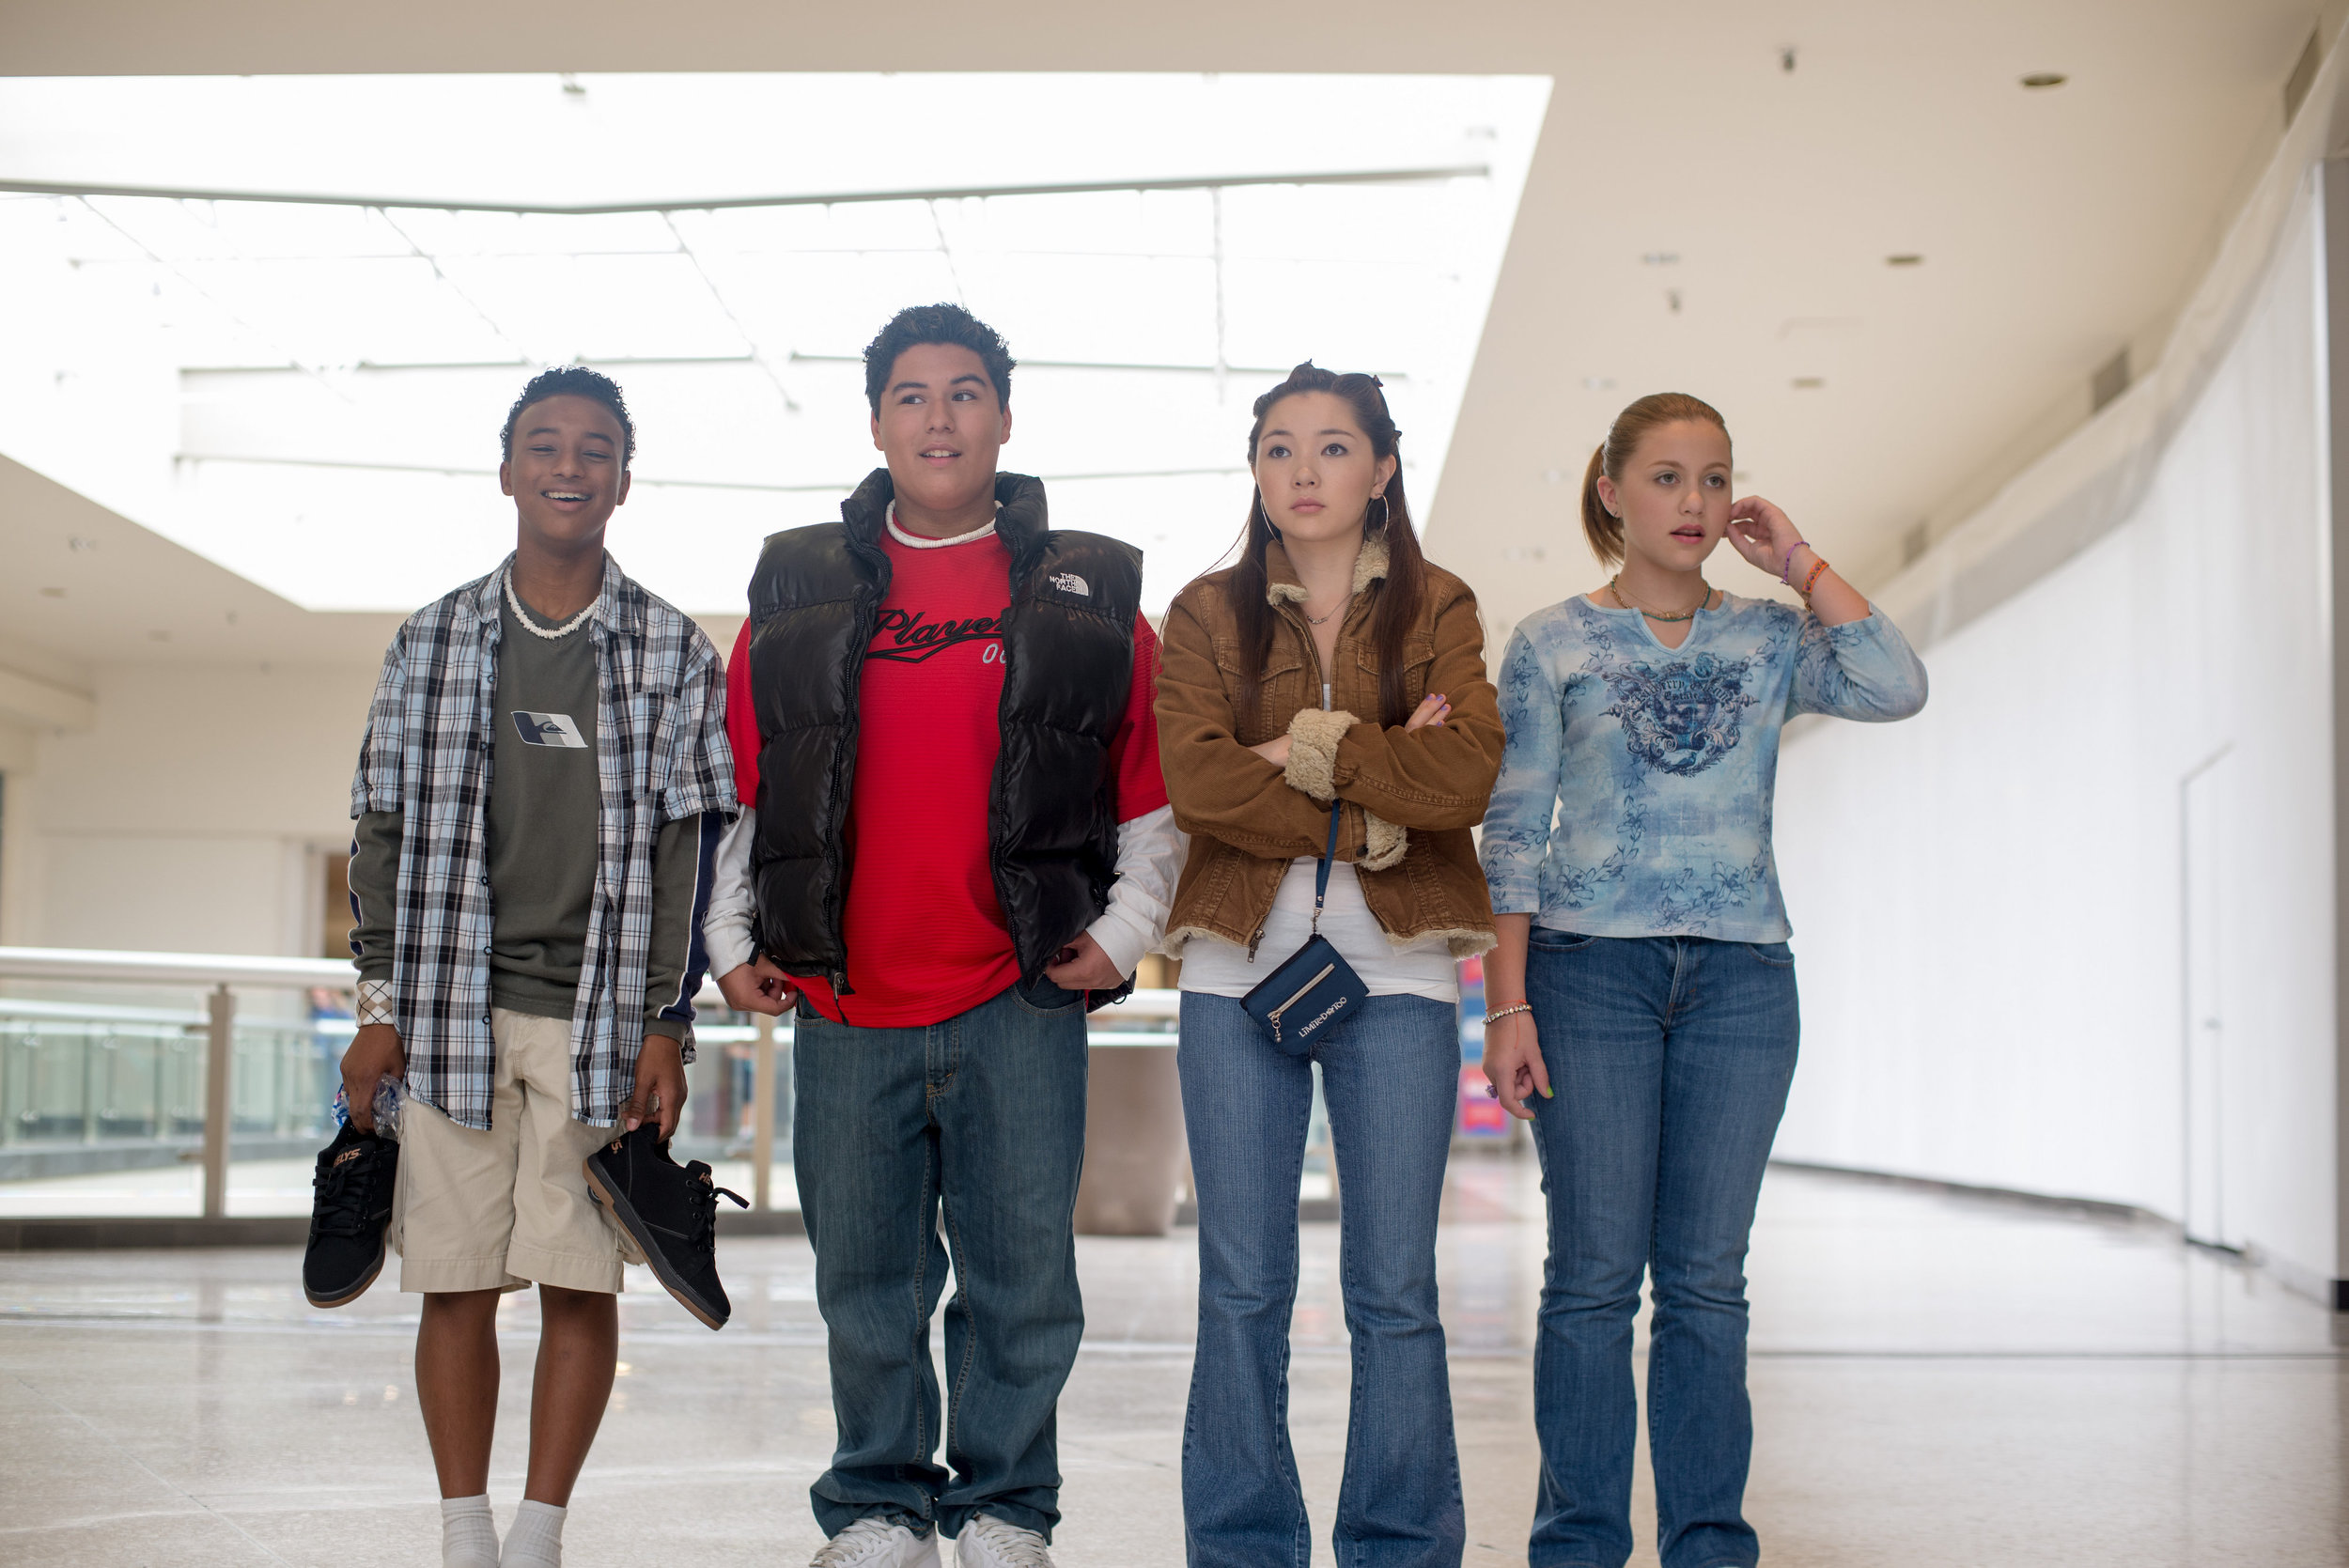 """Four """"middle schoolers"""" take the local shopping mall - (set photos by Kell Riches)"""